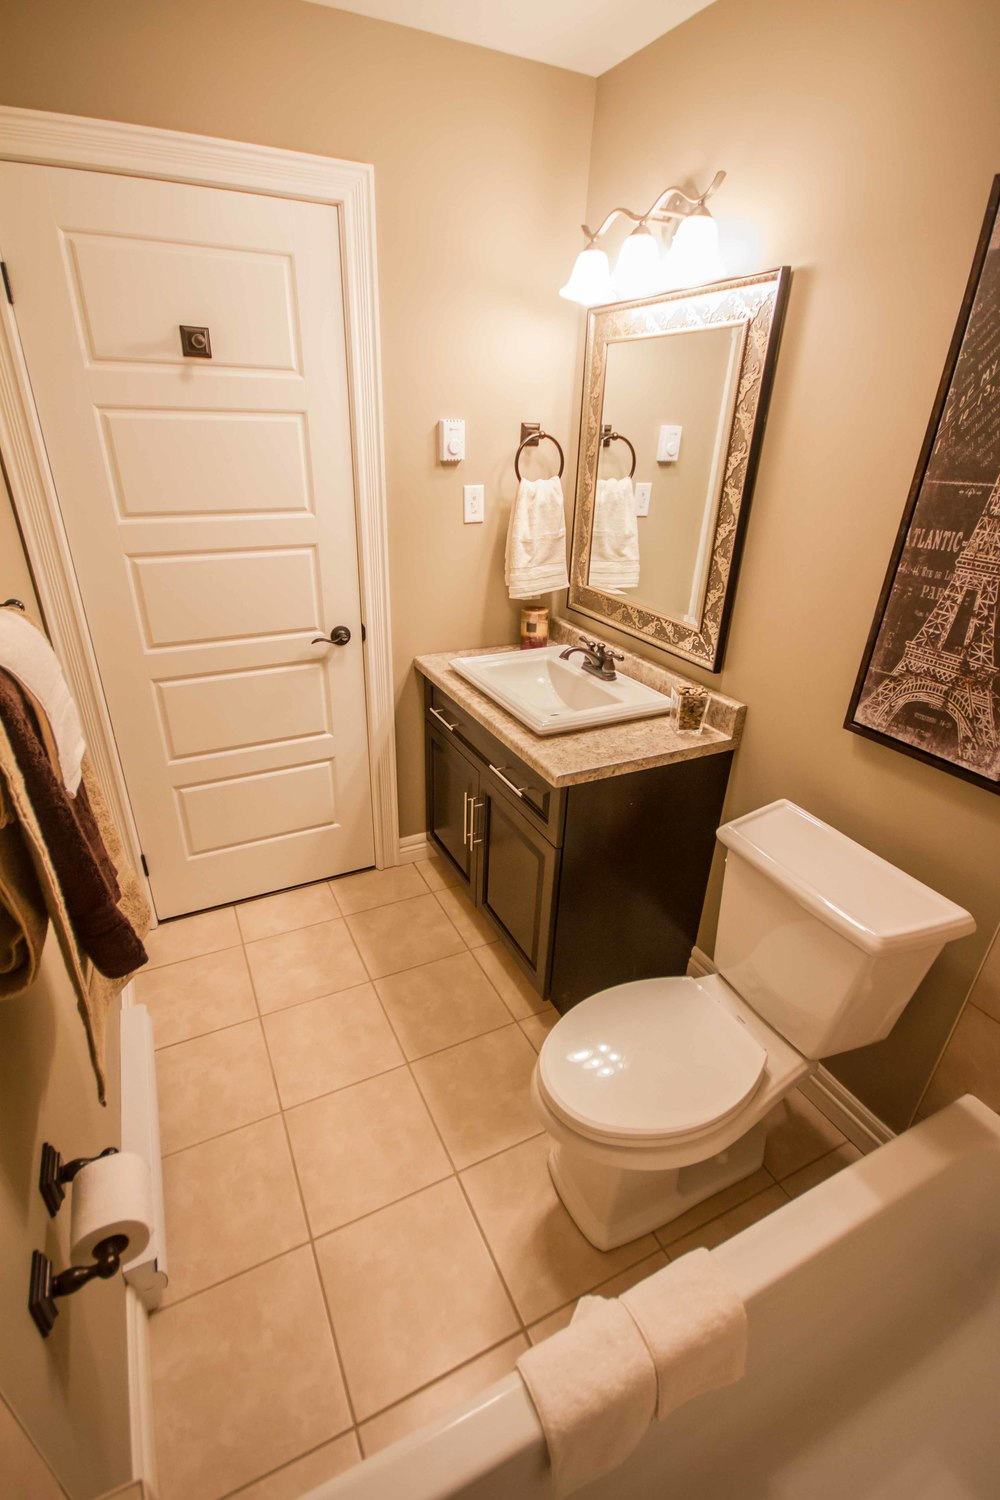 Kestrel Suites - Bathroom2.jpg